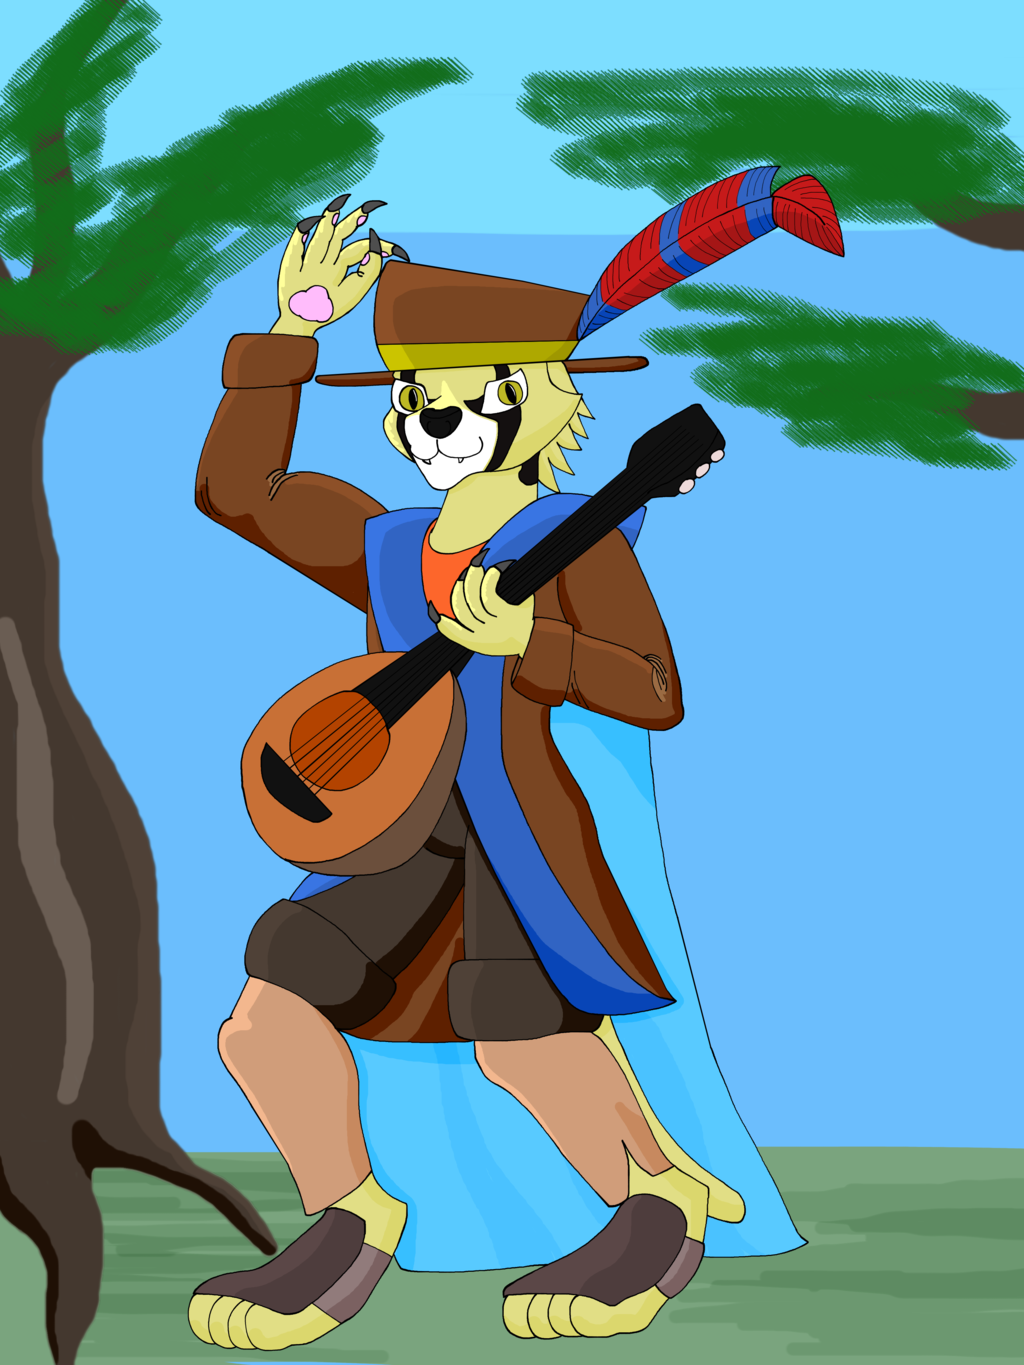 Most recent image: Tabaxi bard